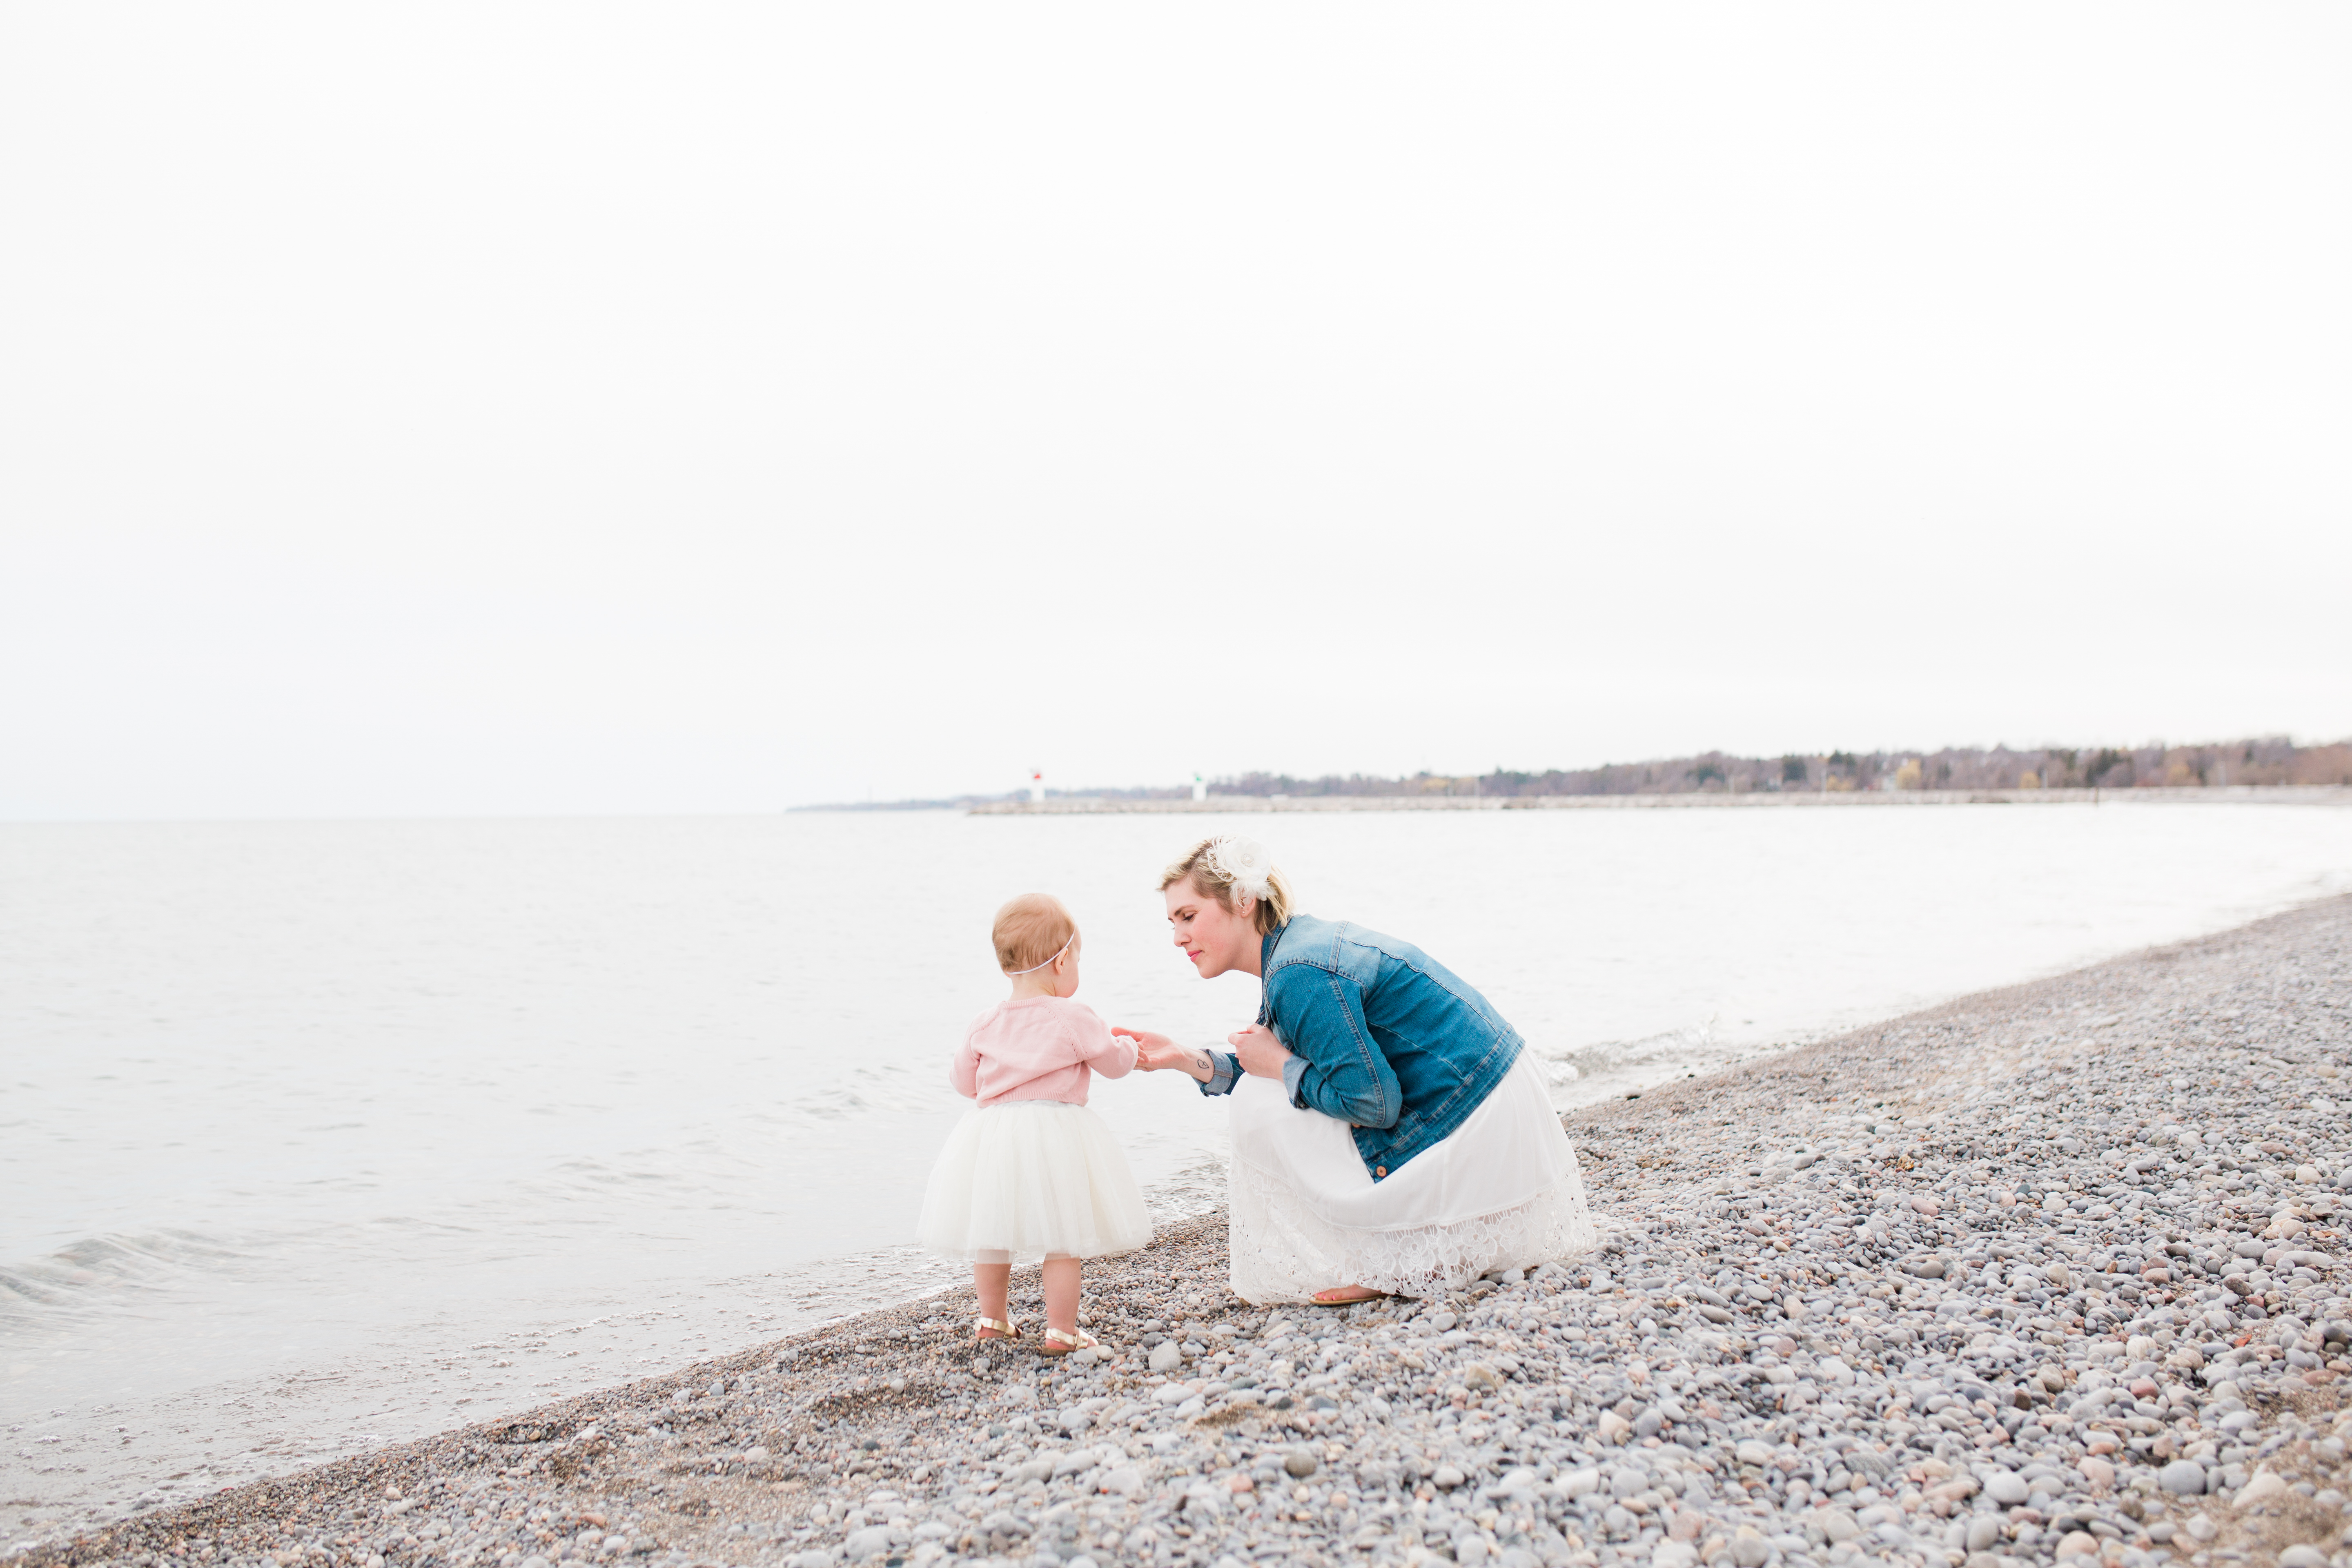 Toronto Family Photographer, Lifestyle Photographer